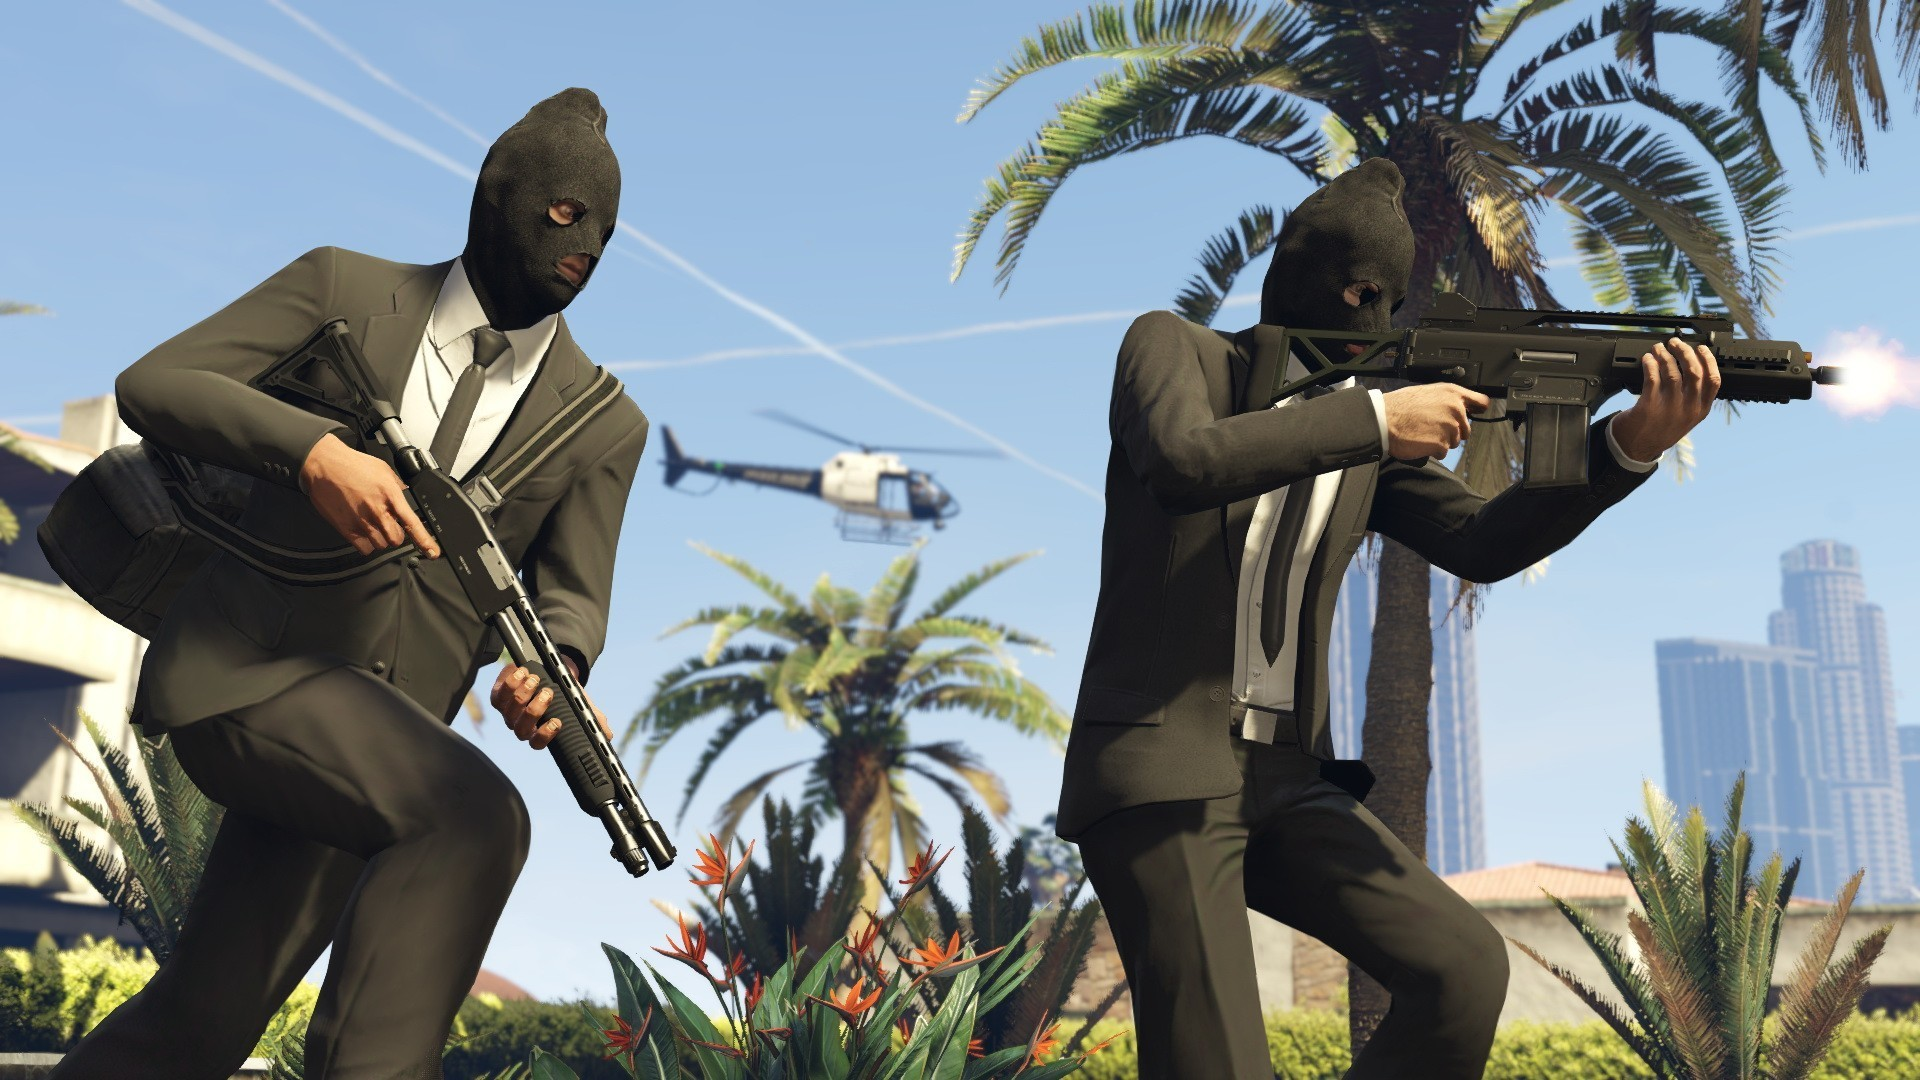 Five-Online-Heists-Are-Coming-to-GTA-5-with-20-plus-Hours-of-Gameplay-468259-3